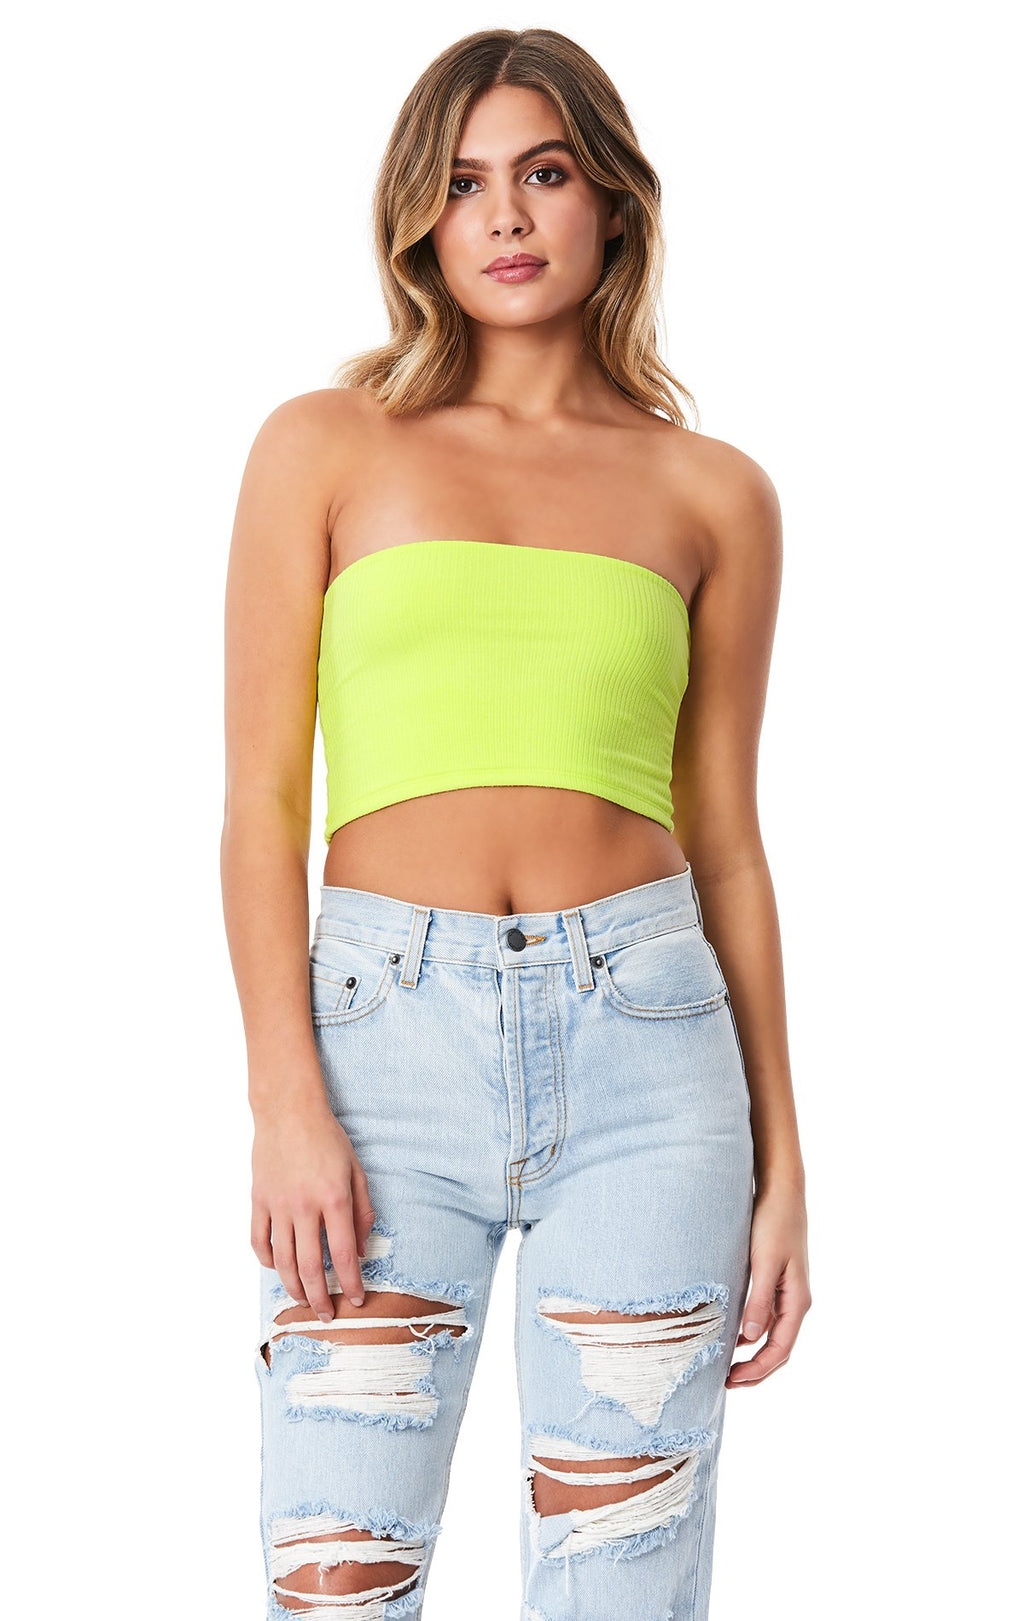 Emma & Sam: NEON TUBE TOP - TUBE